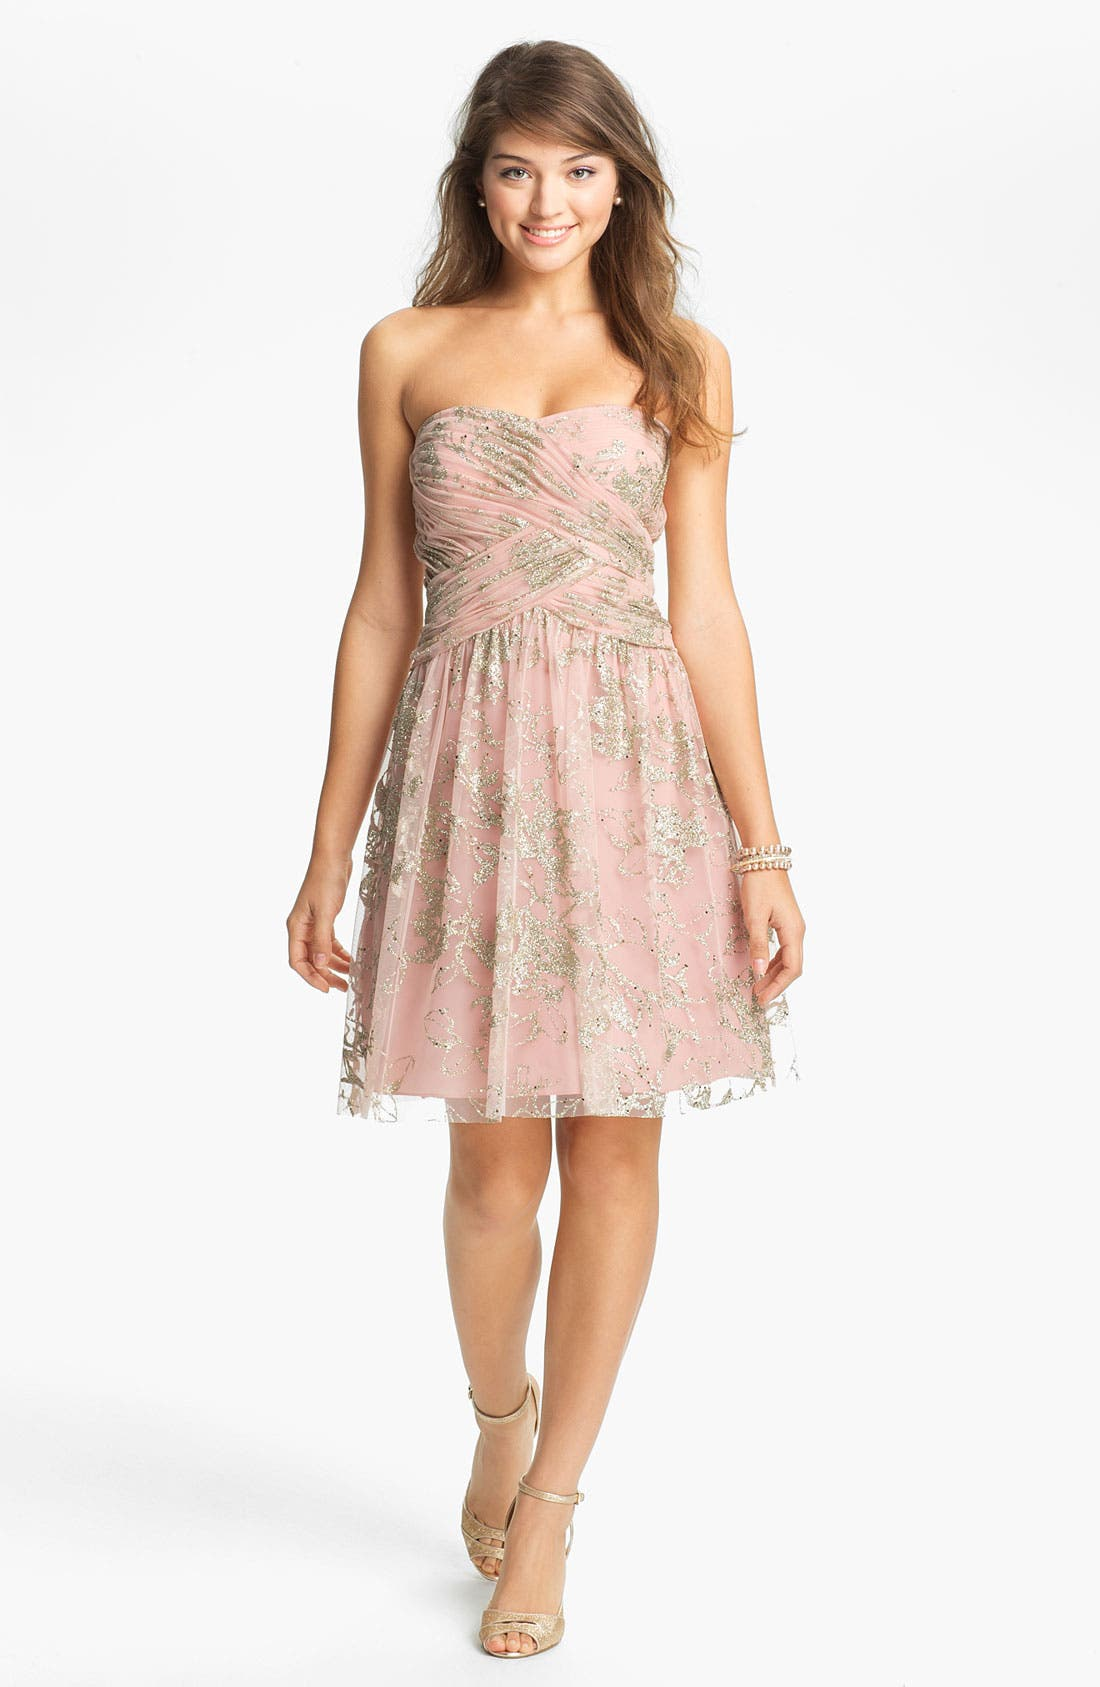 Alternate Image 1 Selected - Hailey by Adrianna Papell Glitter Tulle Fit & Flare Dress (Online Only)